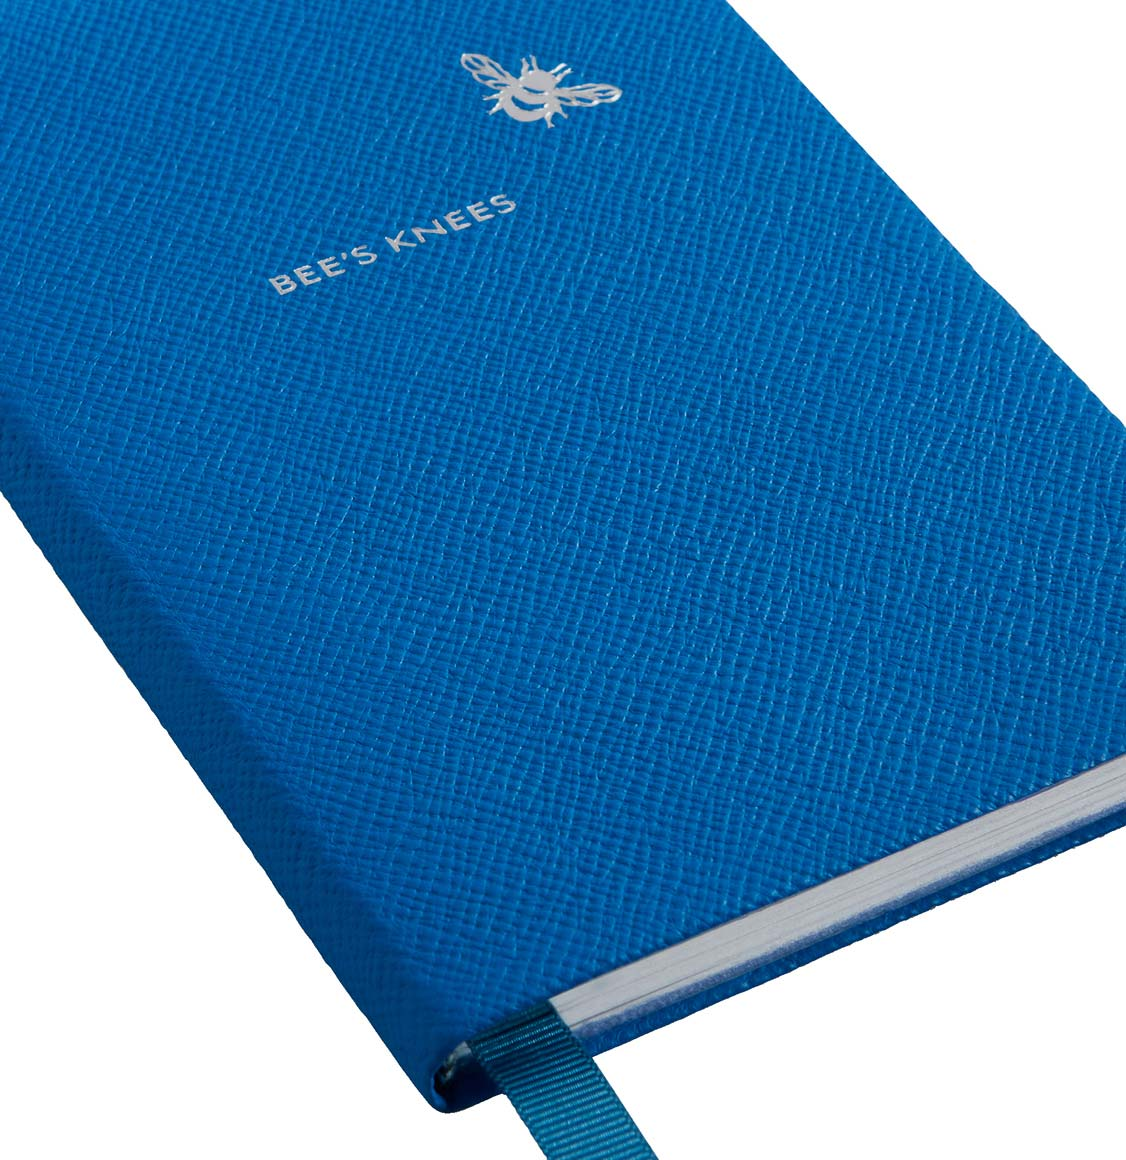 Smythson Bees Knees Notebook